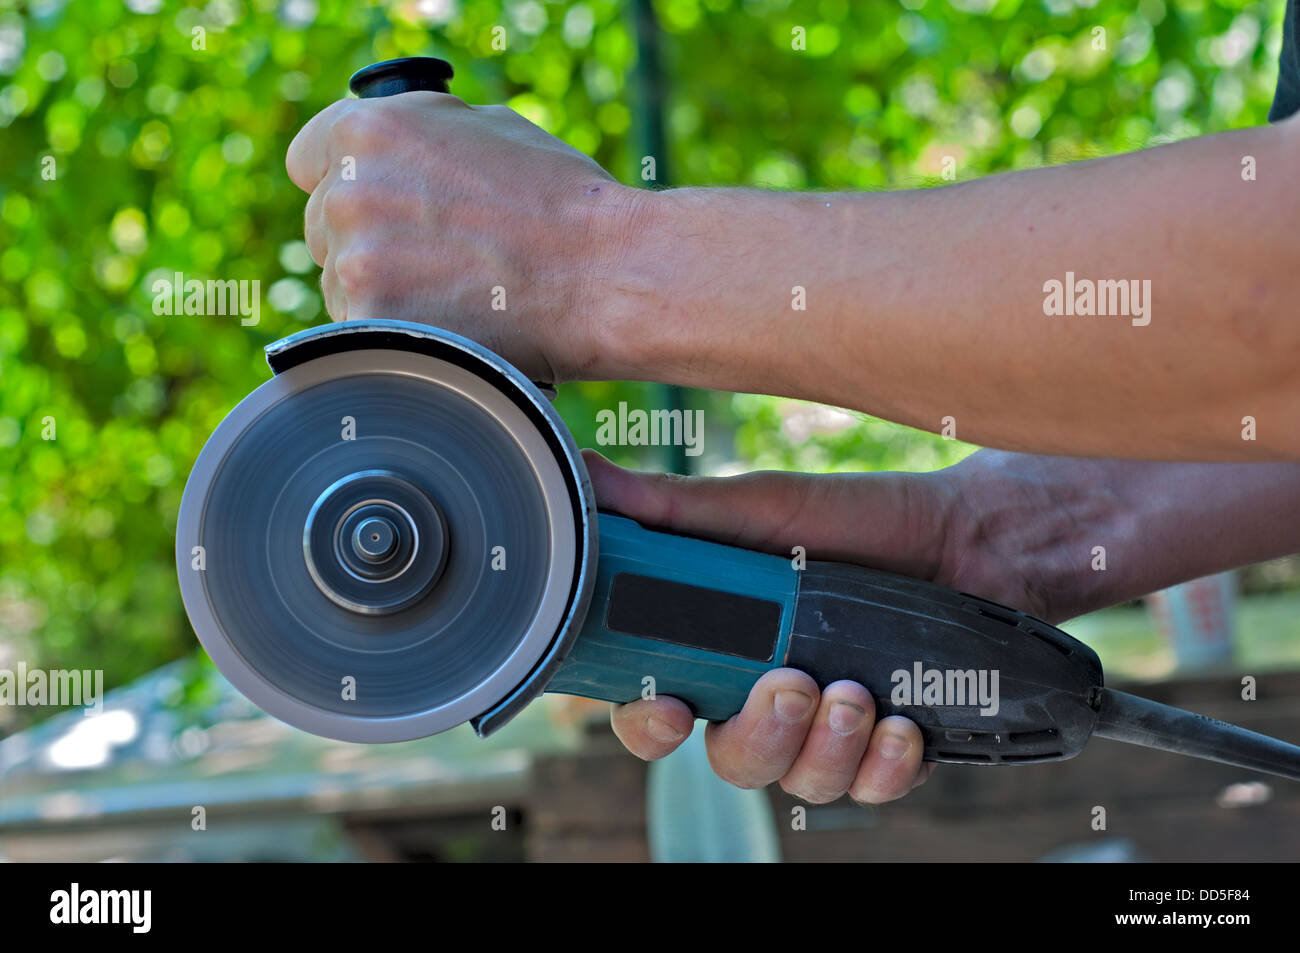 Switched on angle grinder in the man hands. Closeup. - Stock Image